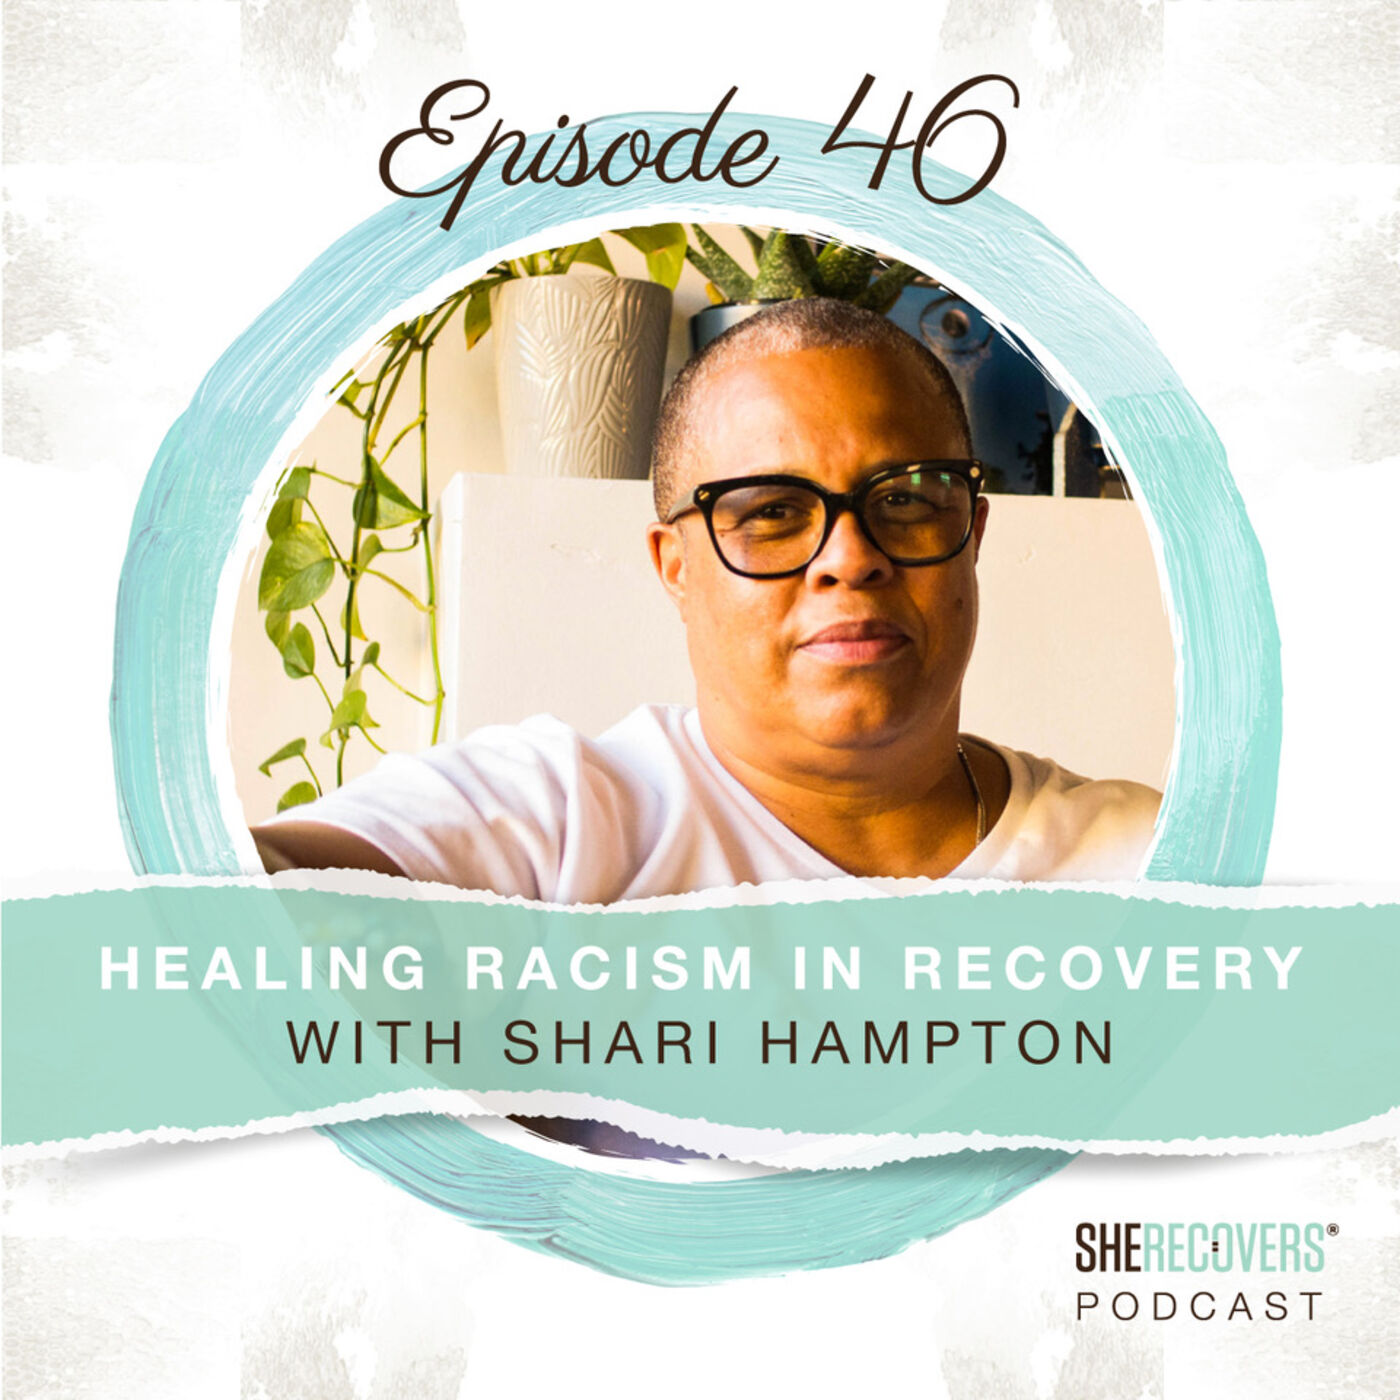 Episode 46: Healing Racism in Recovery with Shari Hampton